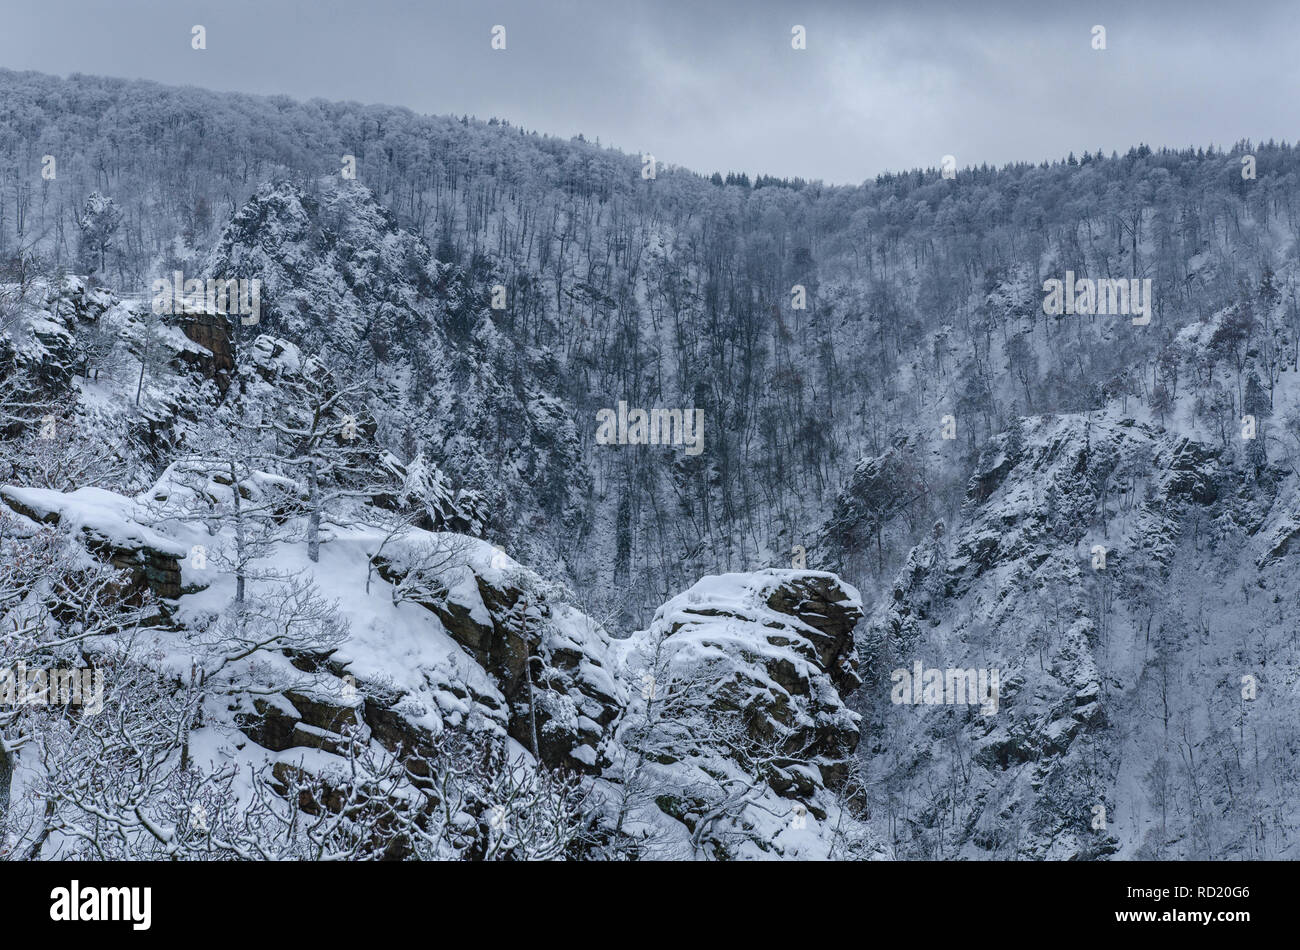 a picturesque scenery of Roßtrappe crag with the bare forest trees covered in snow in the Harz mountains on a cloudy winter day Stock Photo